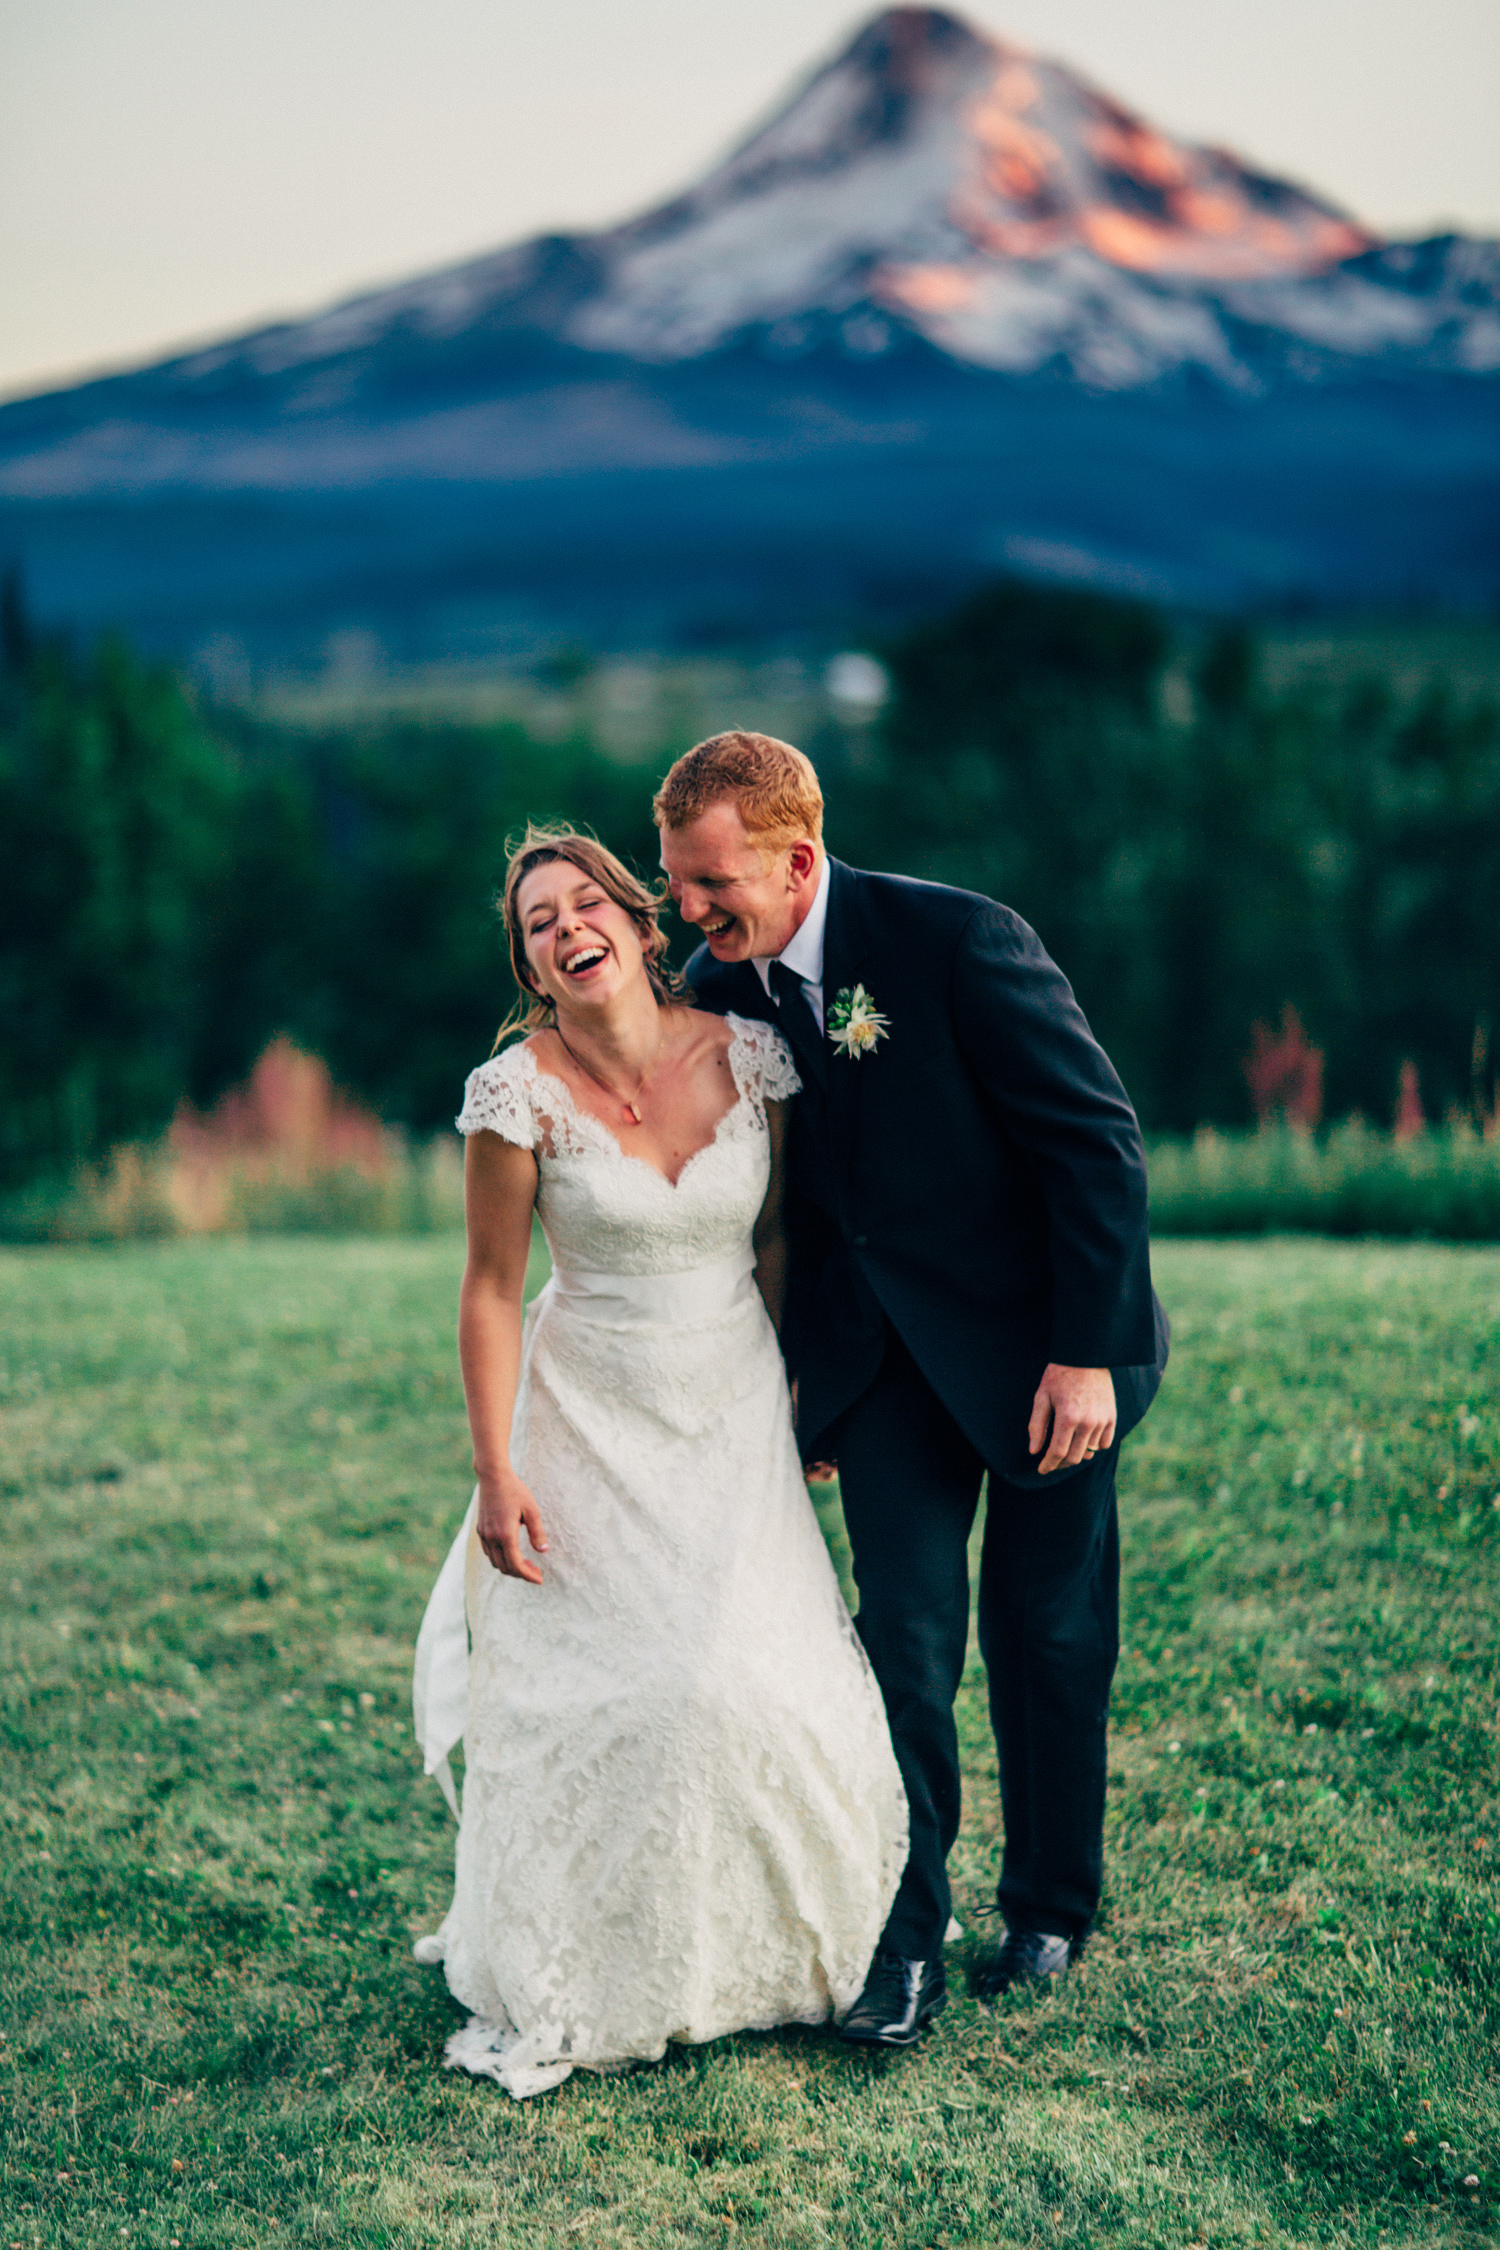 ryan-flynn-photography-best-wedding-photos-2014-0109.JPG